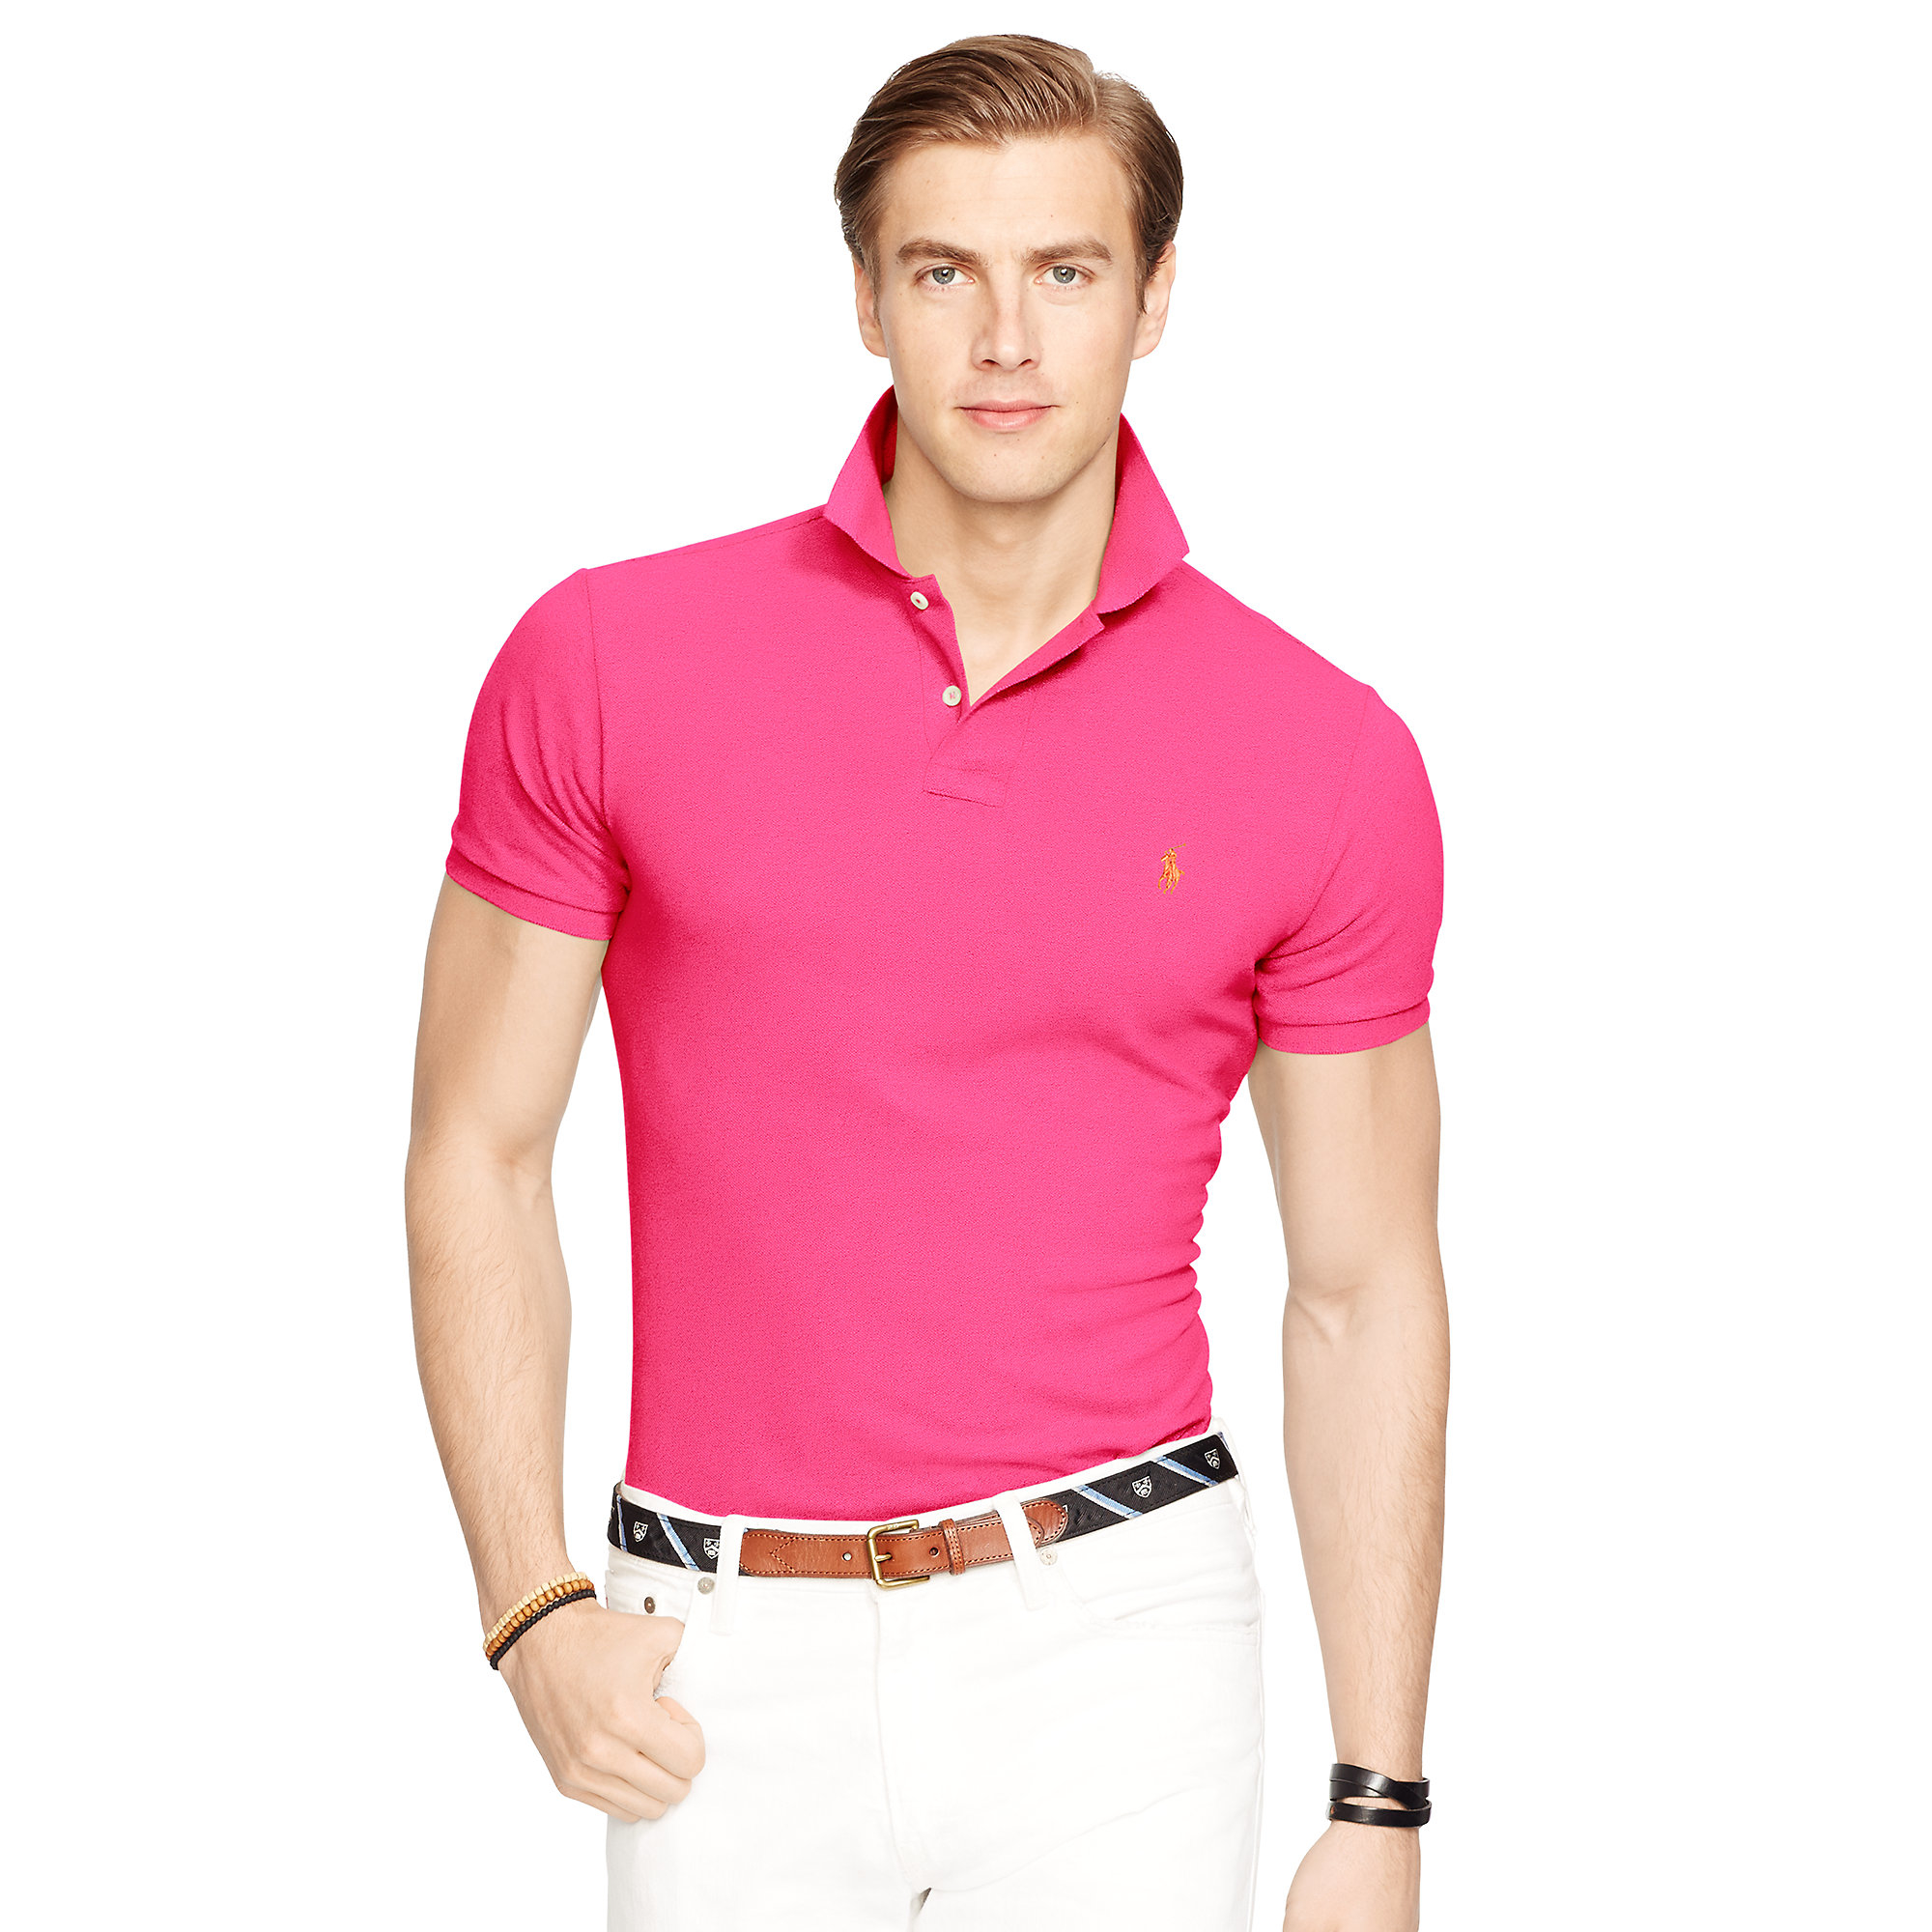 Polo ralph lauren slim fit mesh polo shirt in pink for men for Ralph lauren custom fit mesh polo shirt